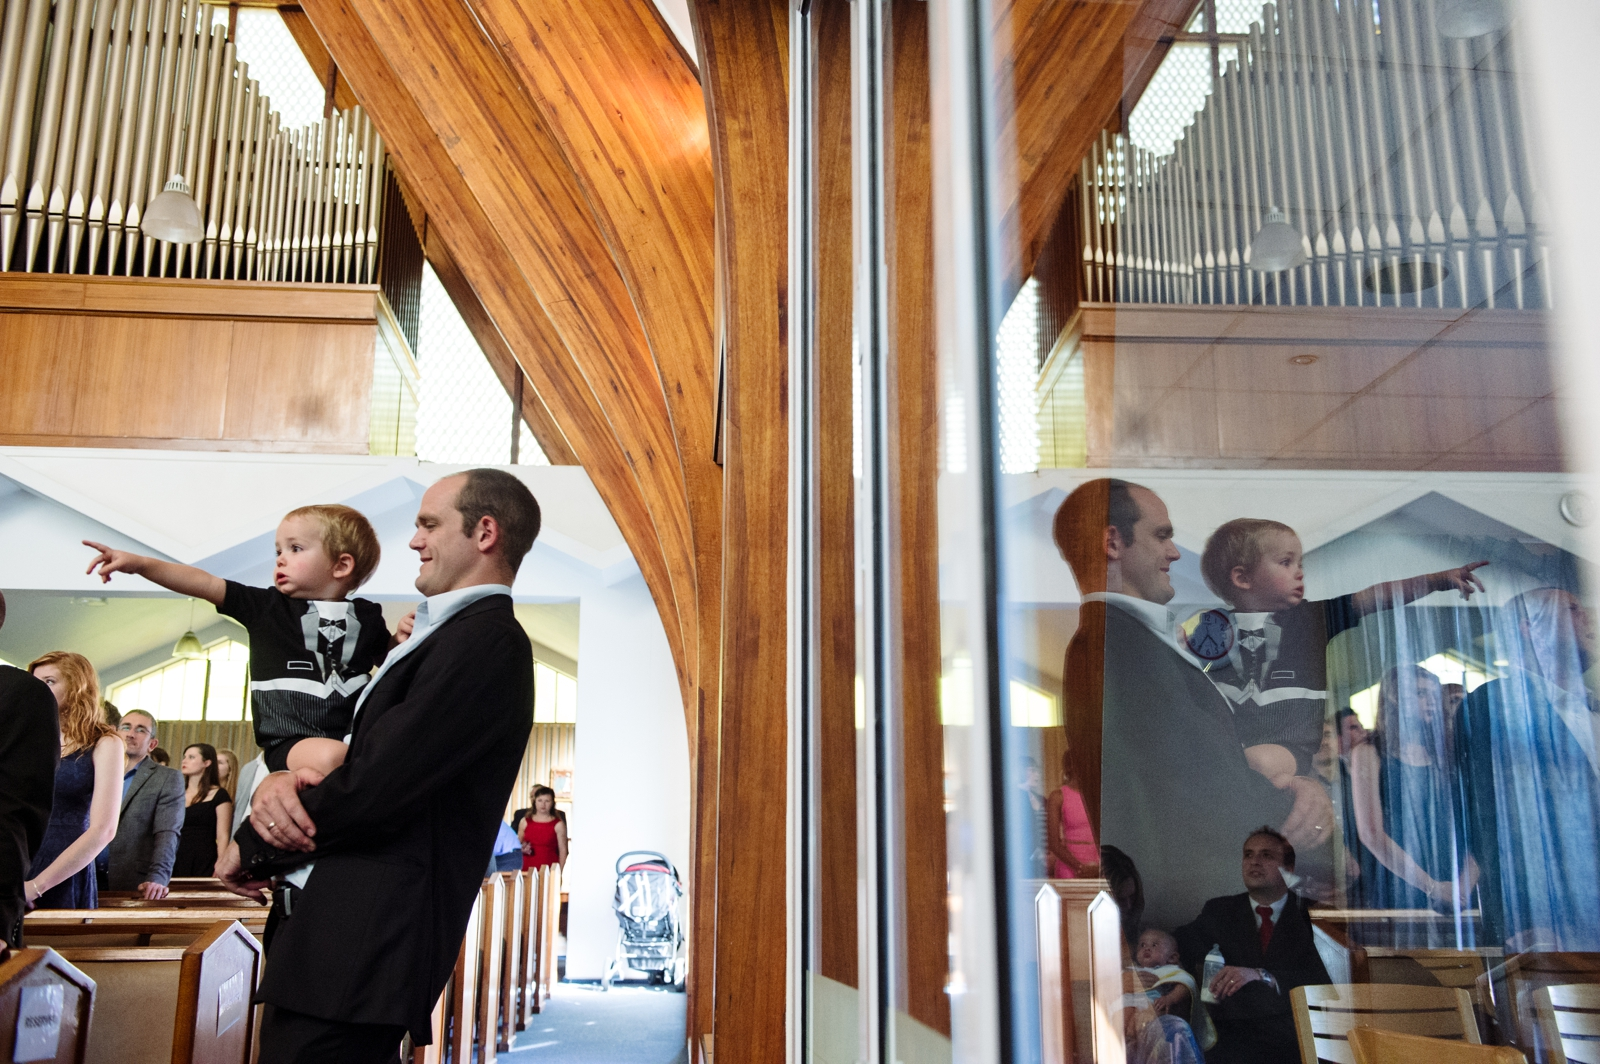 Father and Son in church